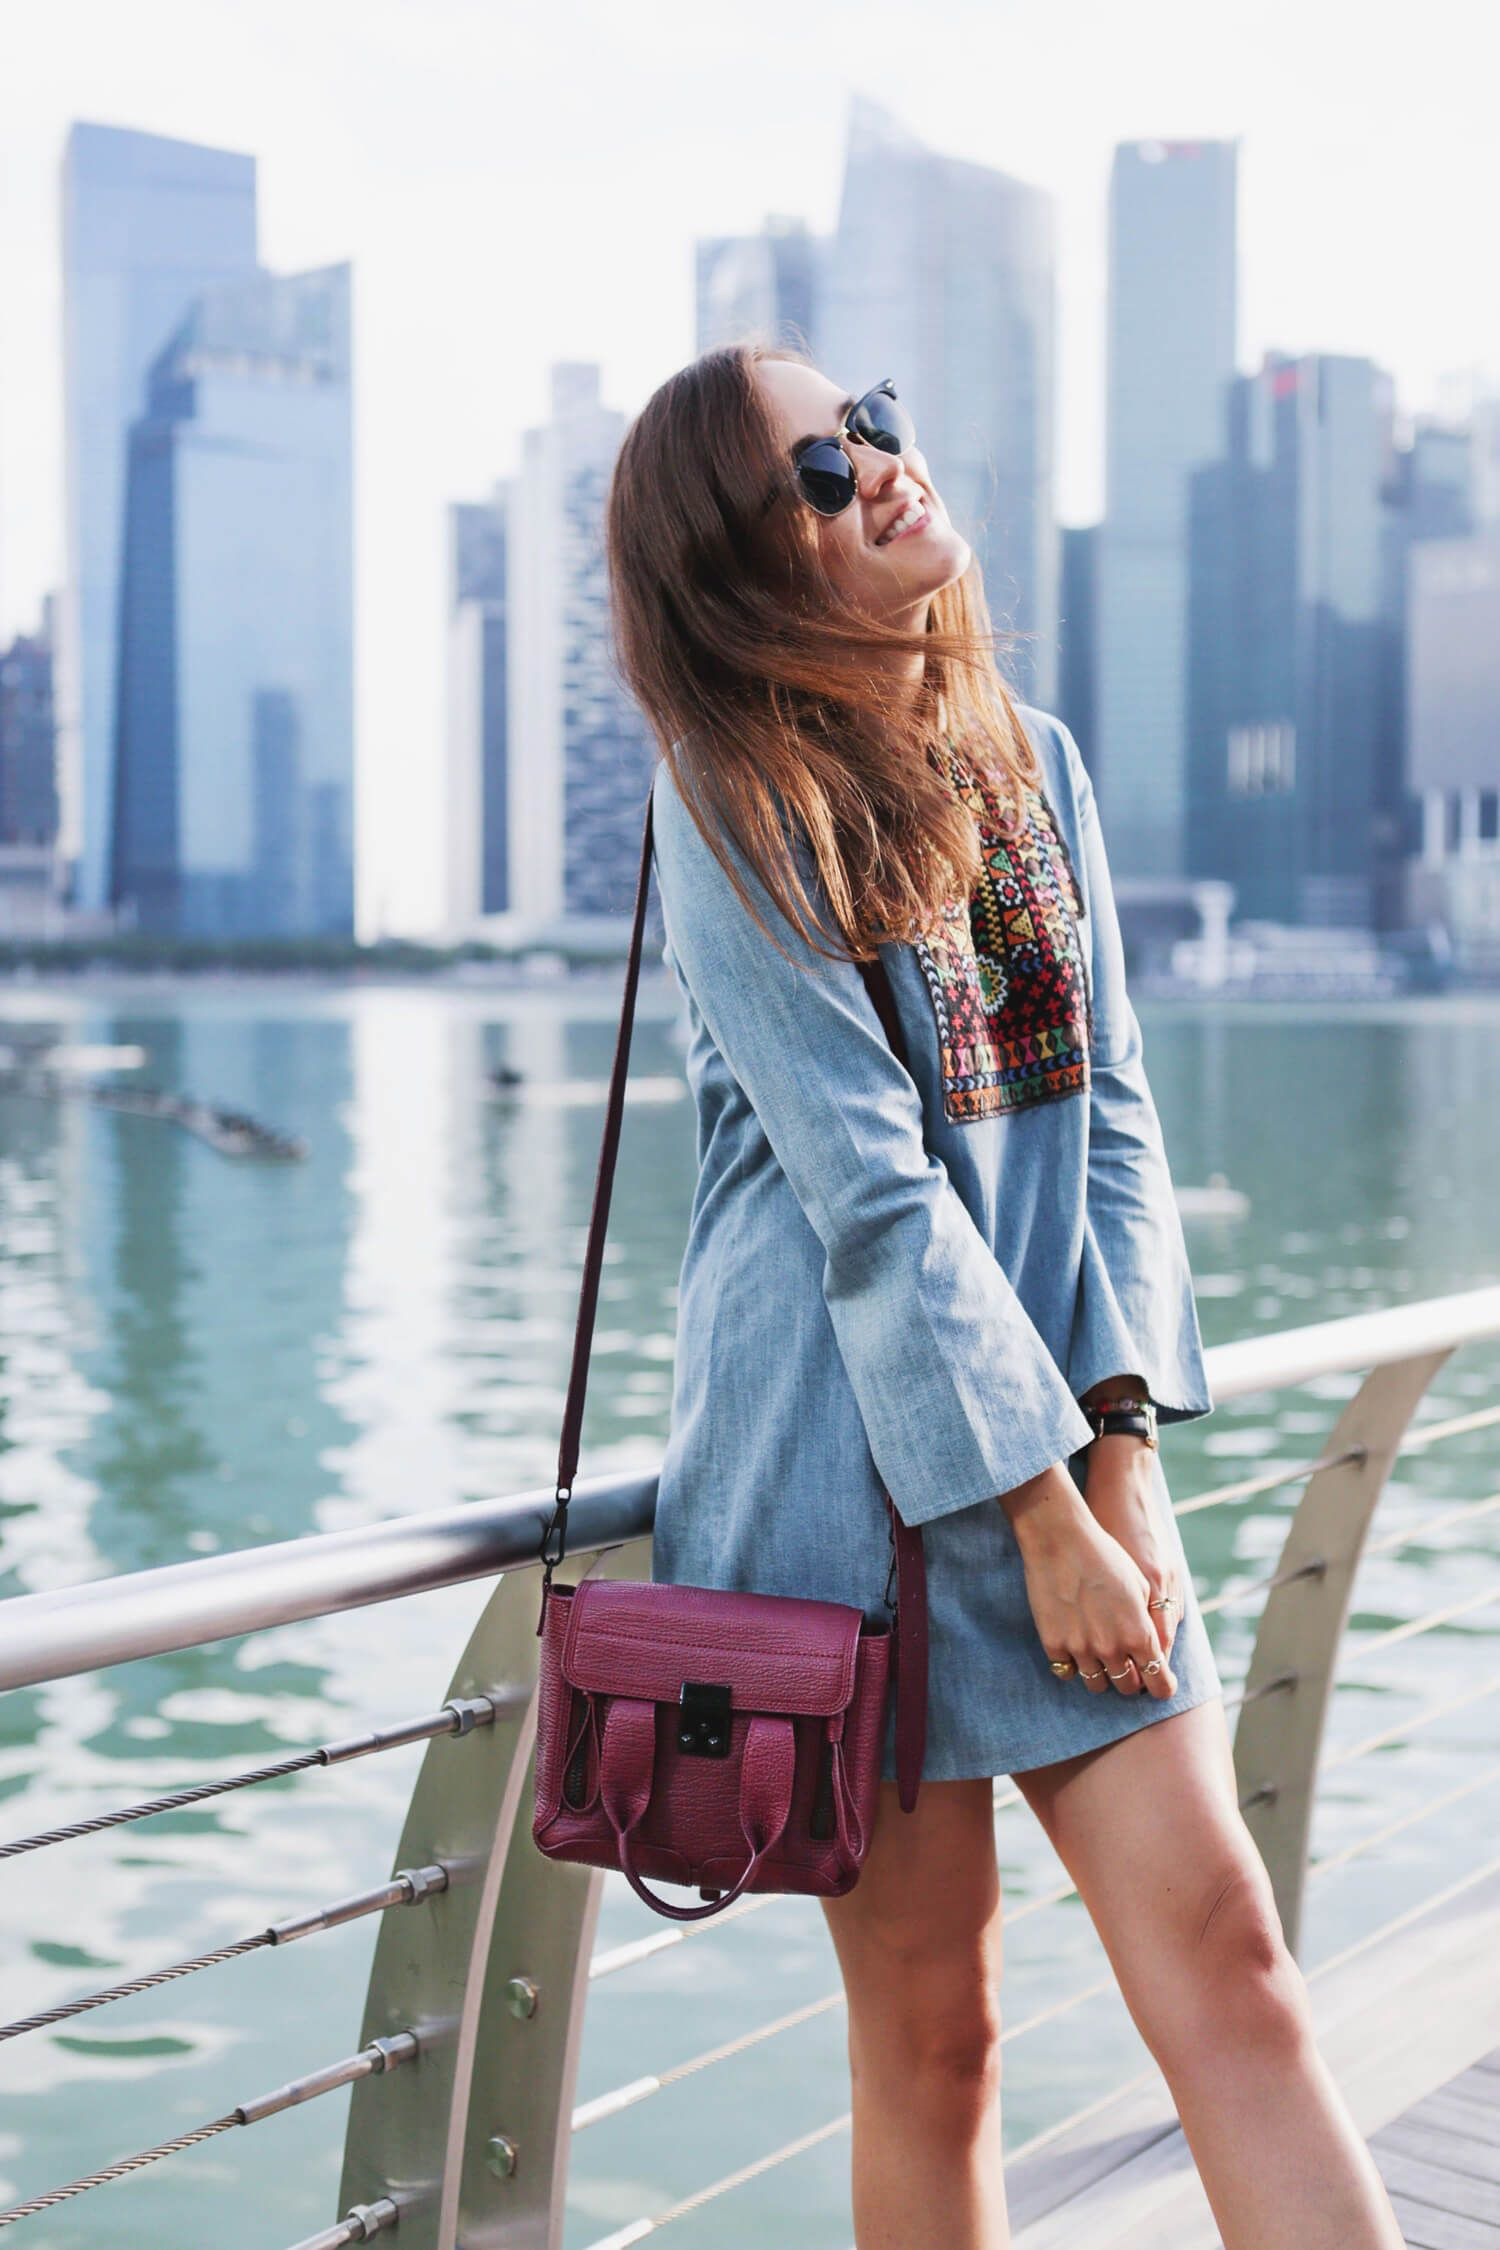 Scrapbook ideas singapore - Style Scrapbook Andy Torres Wearing A Denim Dress And Phillip Lim Bag In Singapore